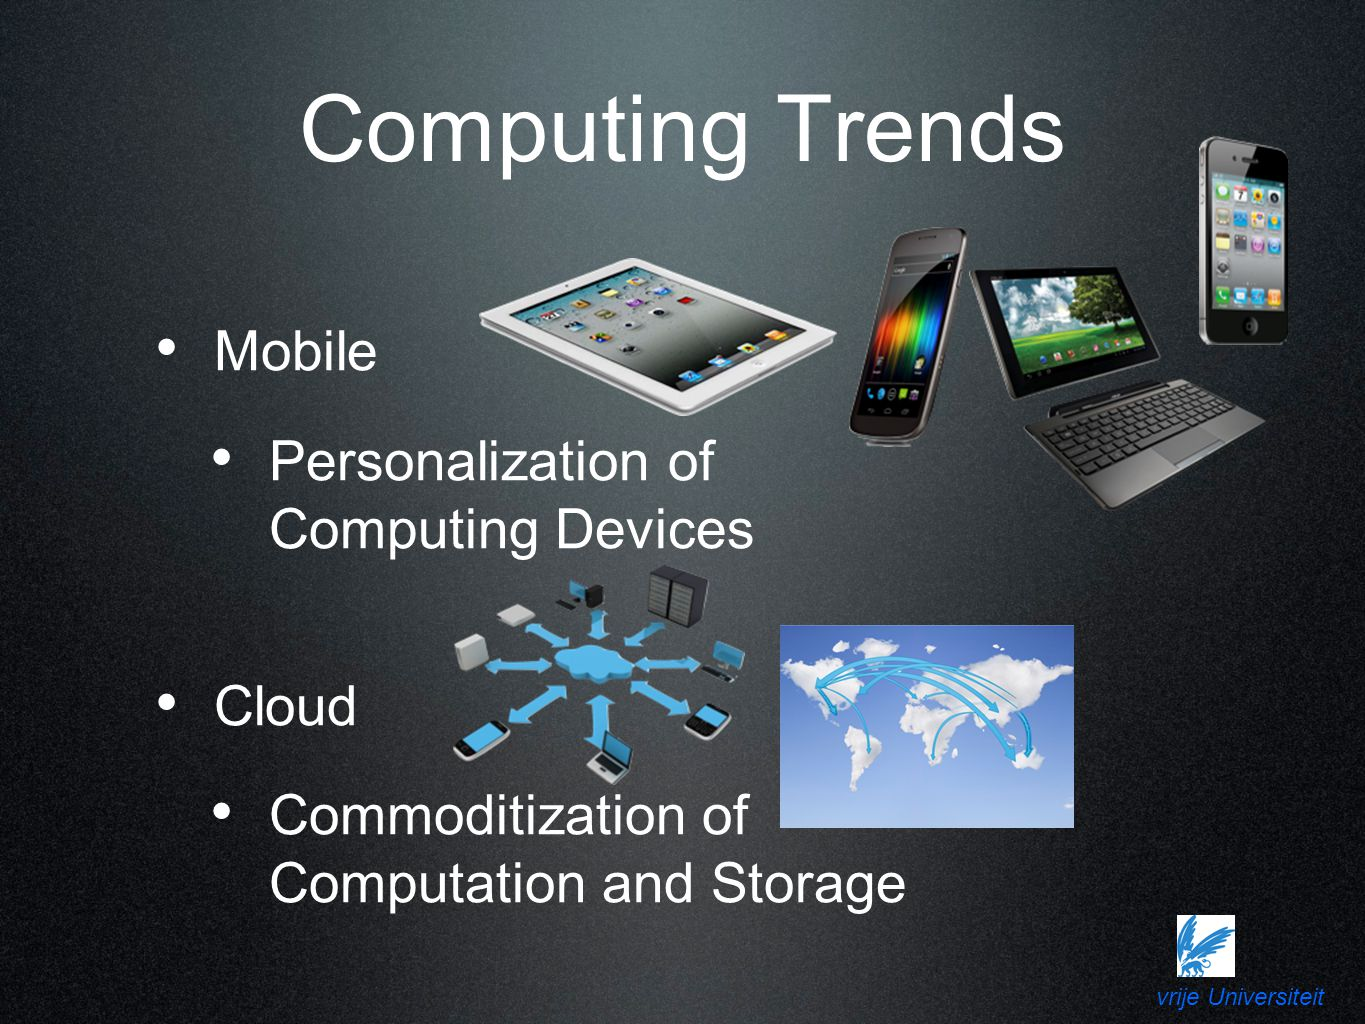 vrije Universiteit Computing Trends Mobile Personalization of Computing Devices Cloud Commoditization of Computation and Storage